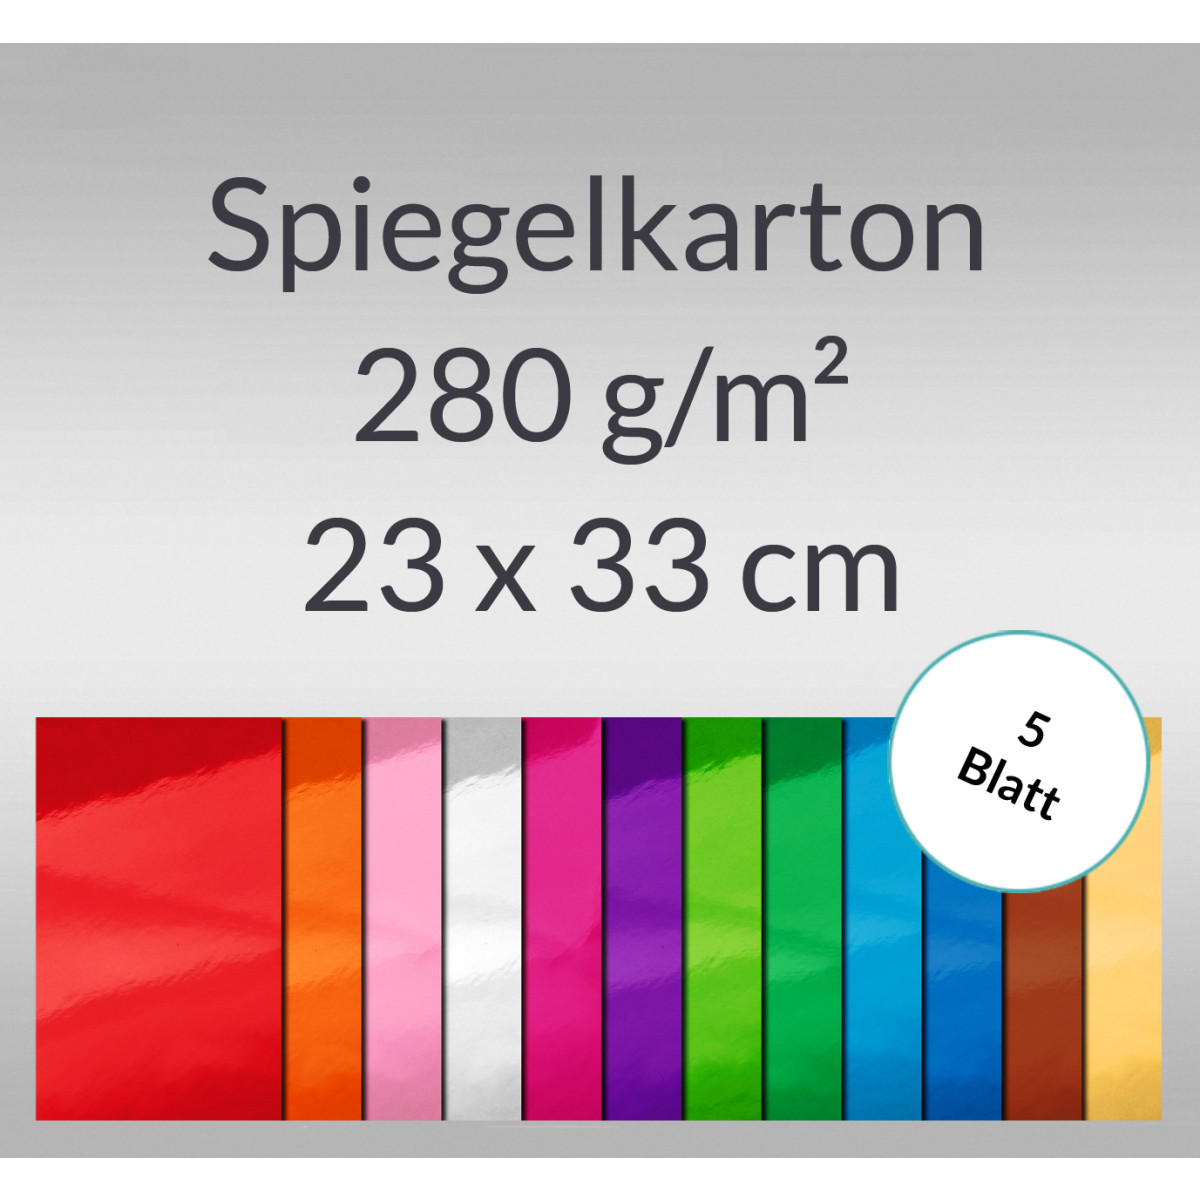 Spiegelkarton 23 x 33 cm - 5 Blatt